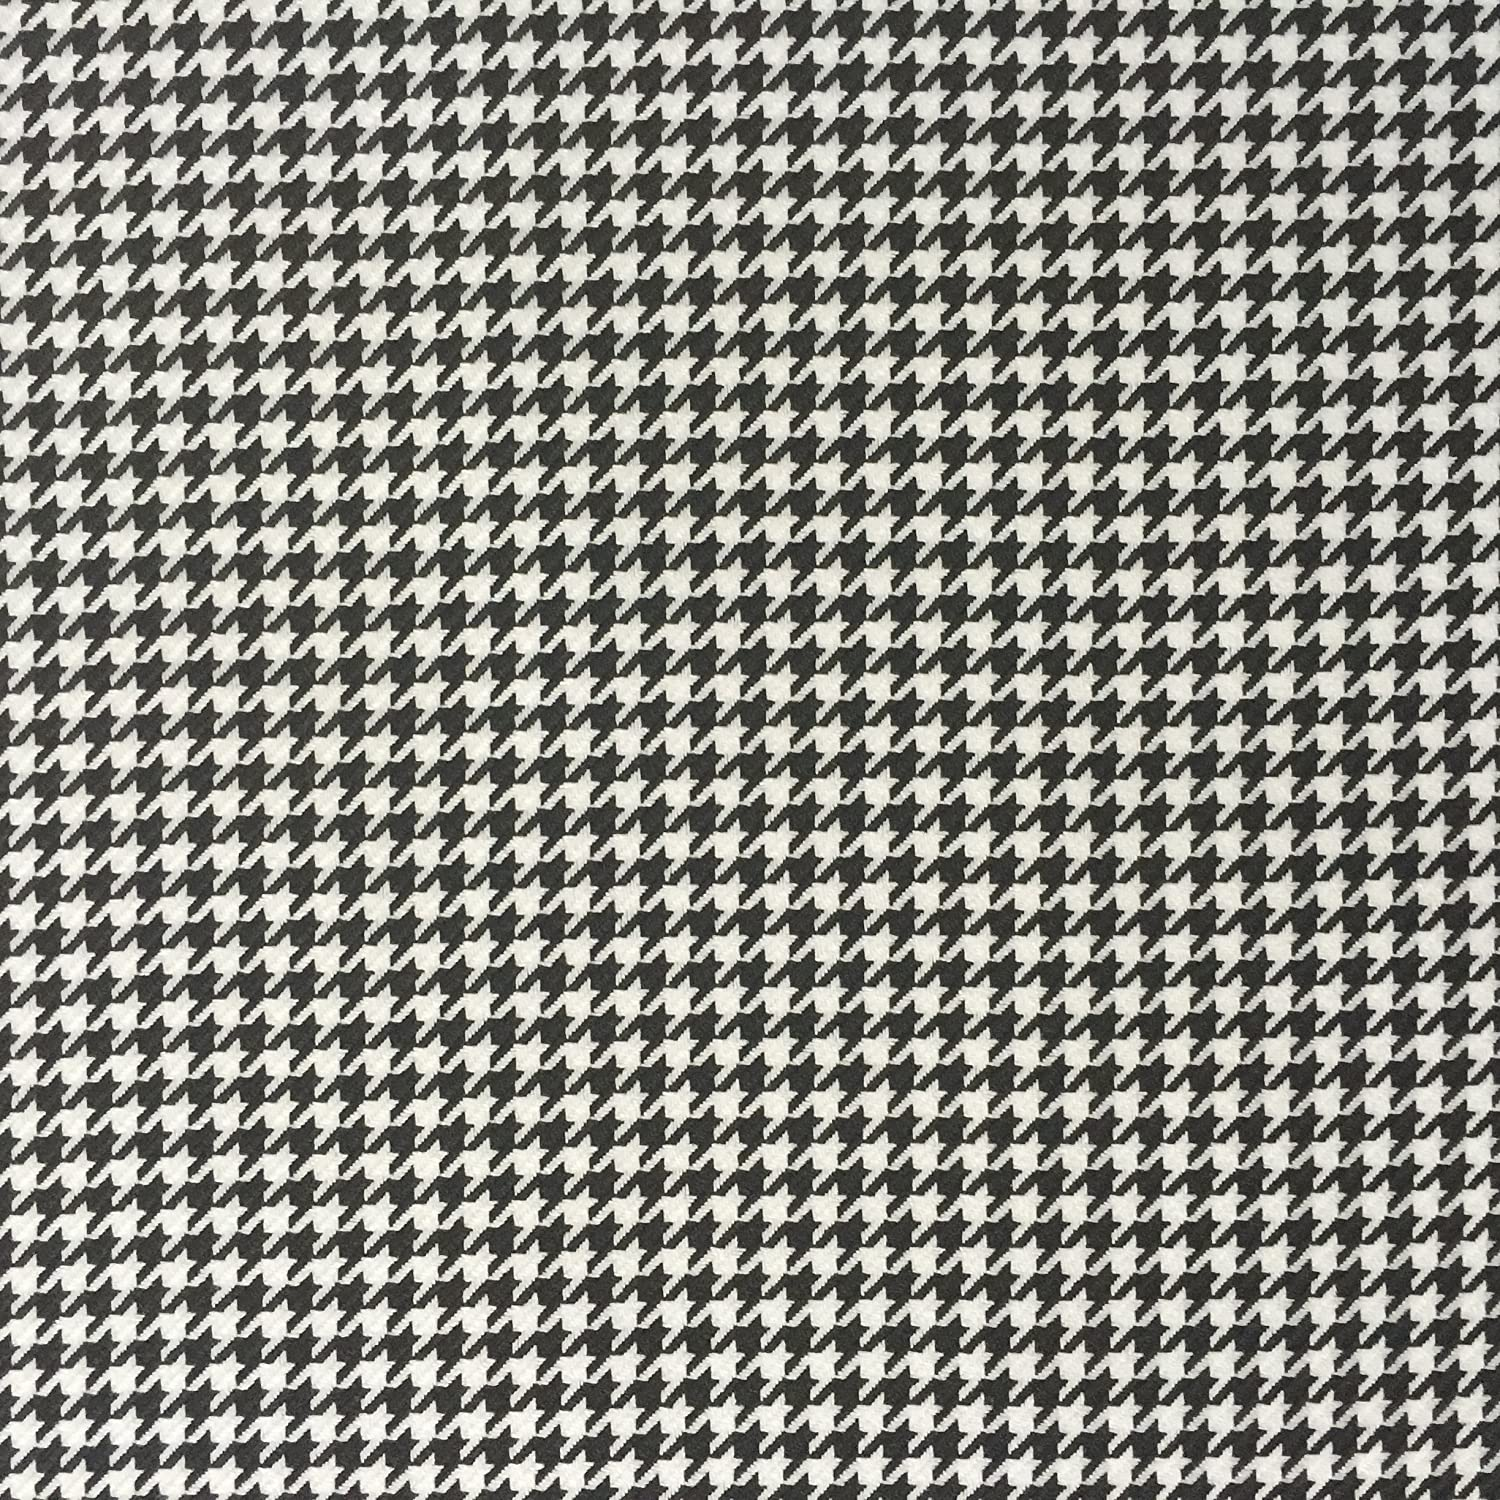 Black and White Dogs tooth Hounds Tooth Check Woven Fabric Dress making Sewing Quilting Skirts Sewing Skirts Bunting 59 inches Wide Sold by the Metre by